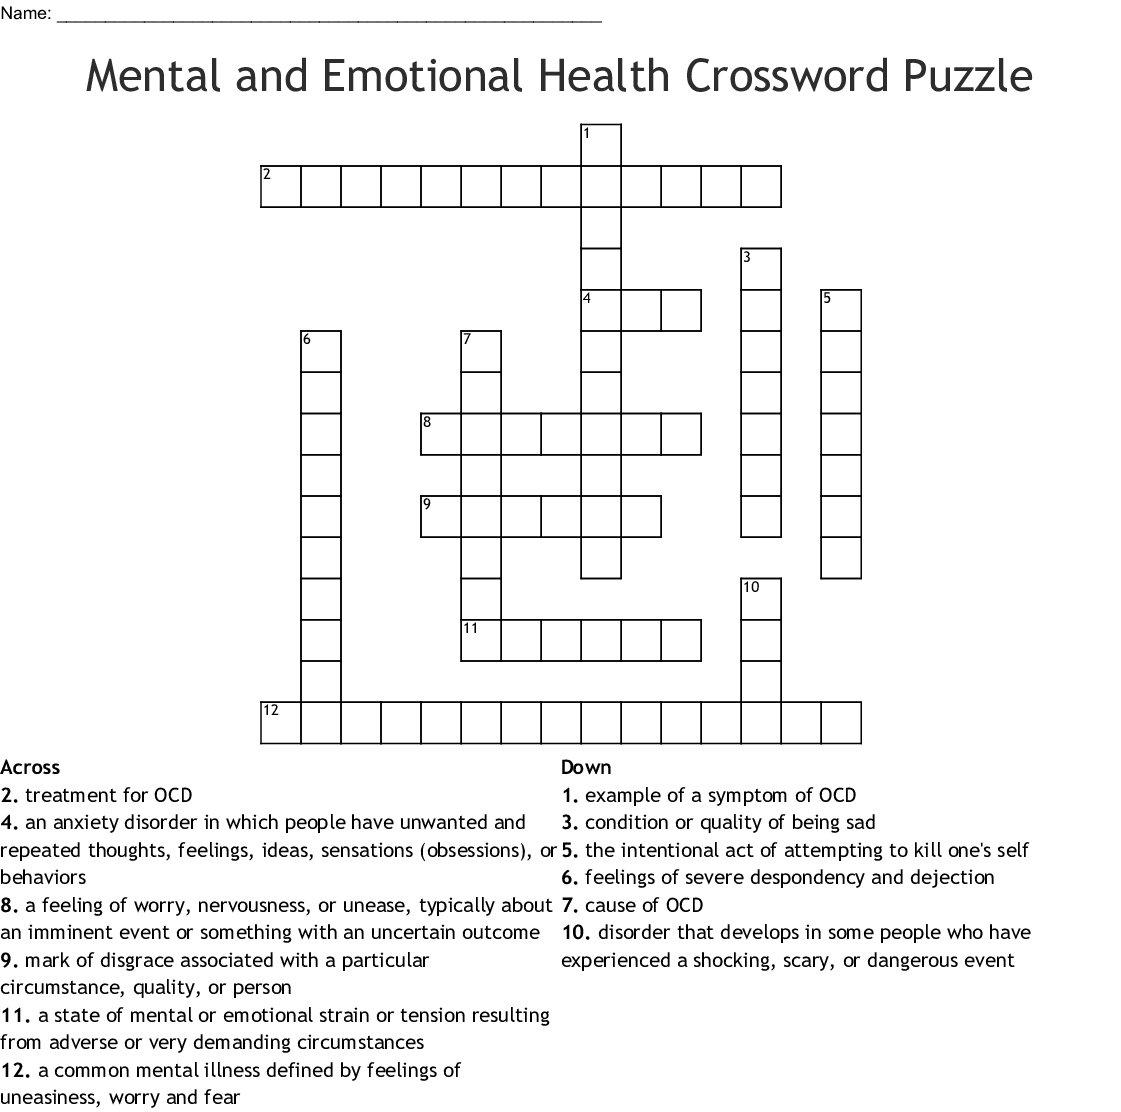 Mental And Emotional Health Crossword Puzzle Crossword - Wordmint - Printable Health Crossword Puzzles